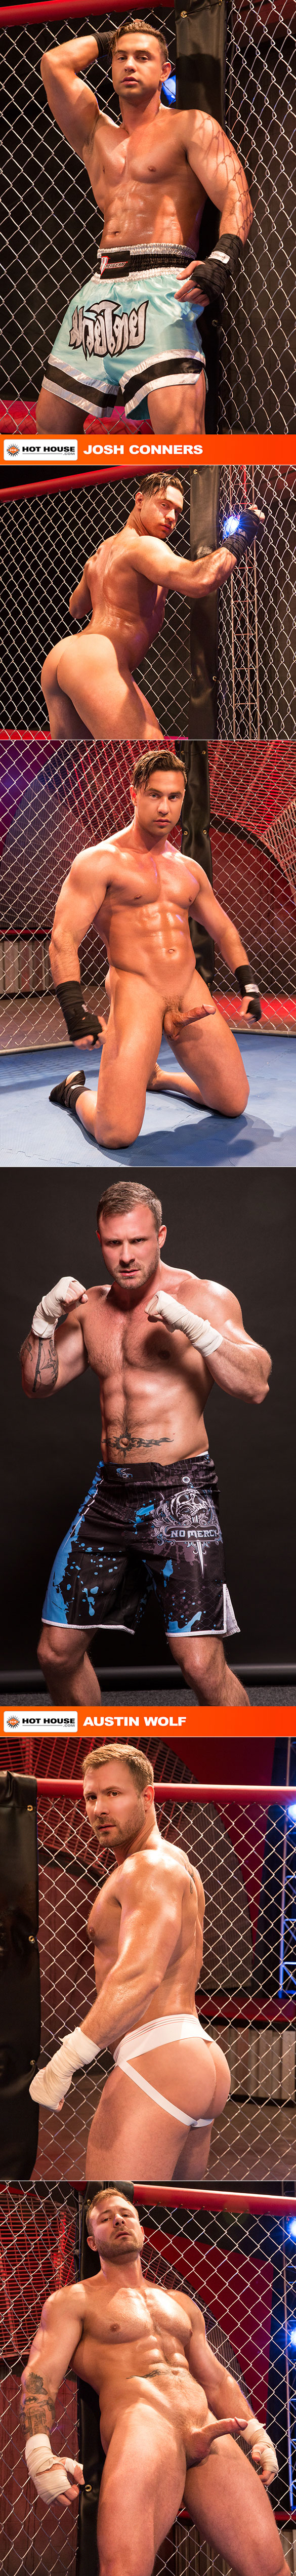 """HotHouse: Austin Wolf bangs Josh Conners in """"TKO Total Knockouts"""""""